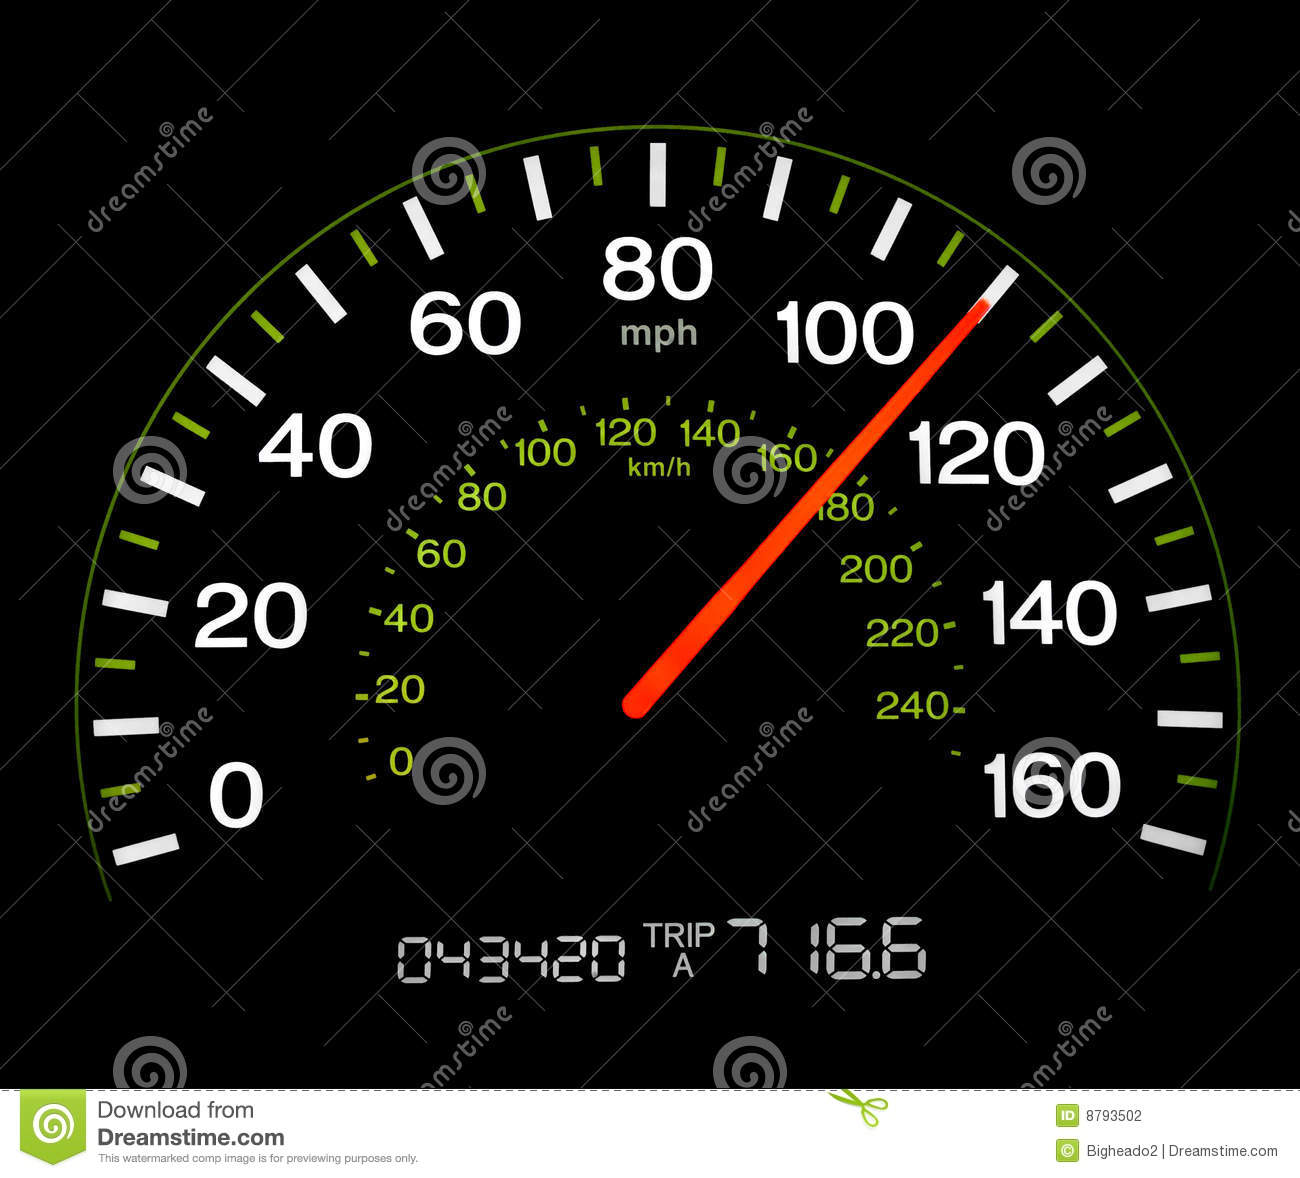 Stock Illustration Save Earth Save World Pla  Cartoon Kids Boy Girl Ecology Concept Image54344302 furthermore Stock Photography Speedometer 110 Mph Image8793502 also Kitchen Restaurant Floor Plans 2d Dwg Design Plan Autocad furthermore Estudiar Arquitectura in addition Cl017 ground. on house plan 2d design 2016